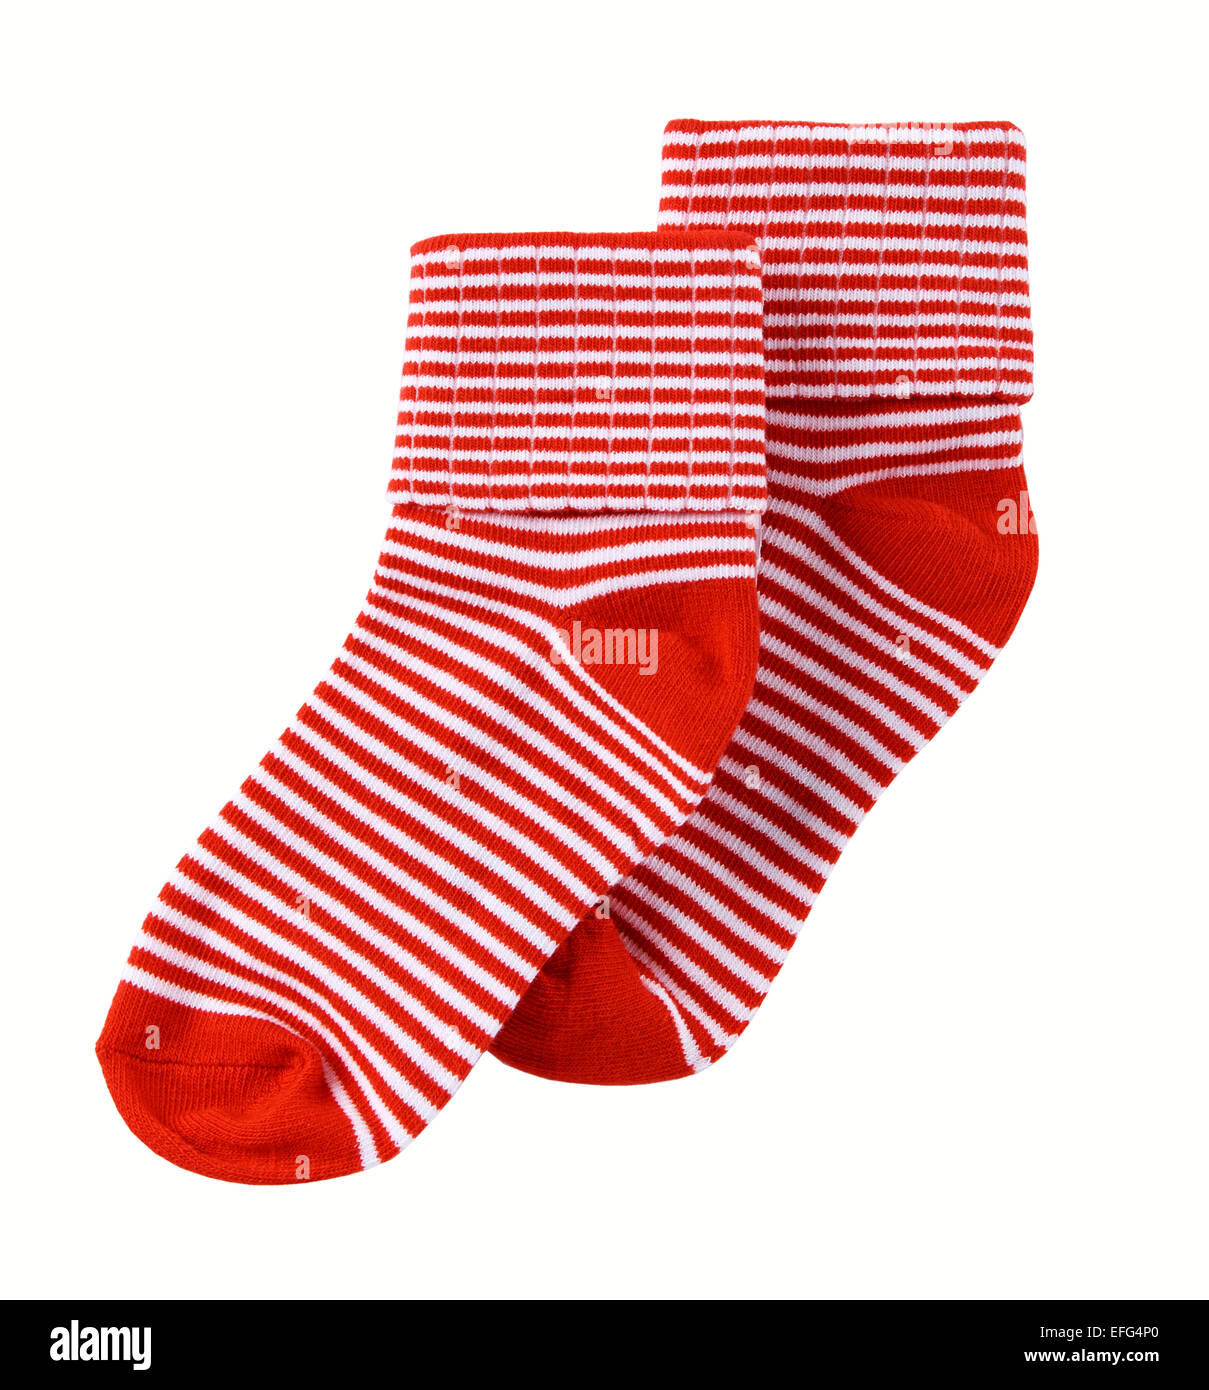 red and white ankle socks - Stock Image